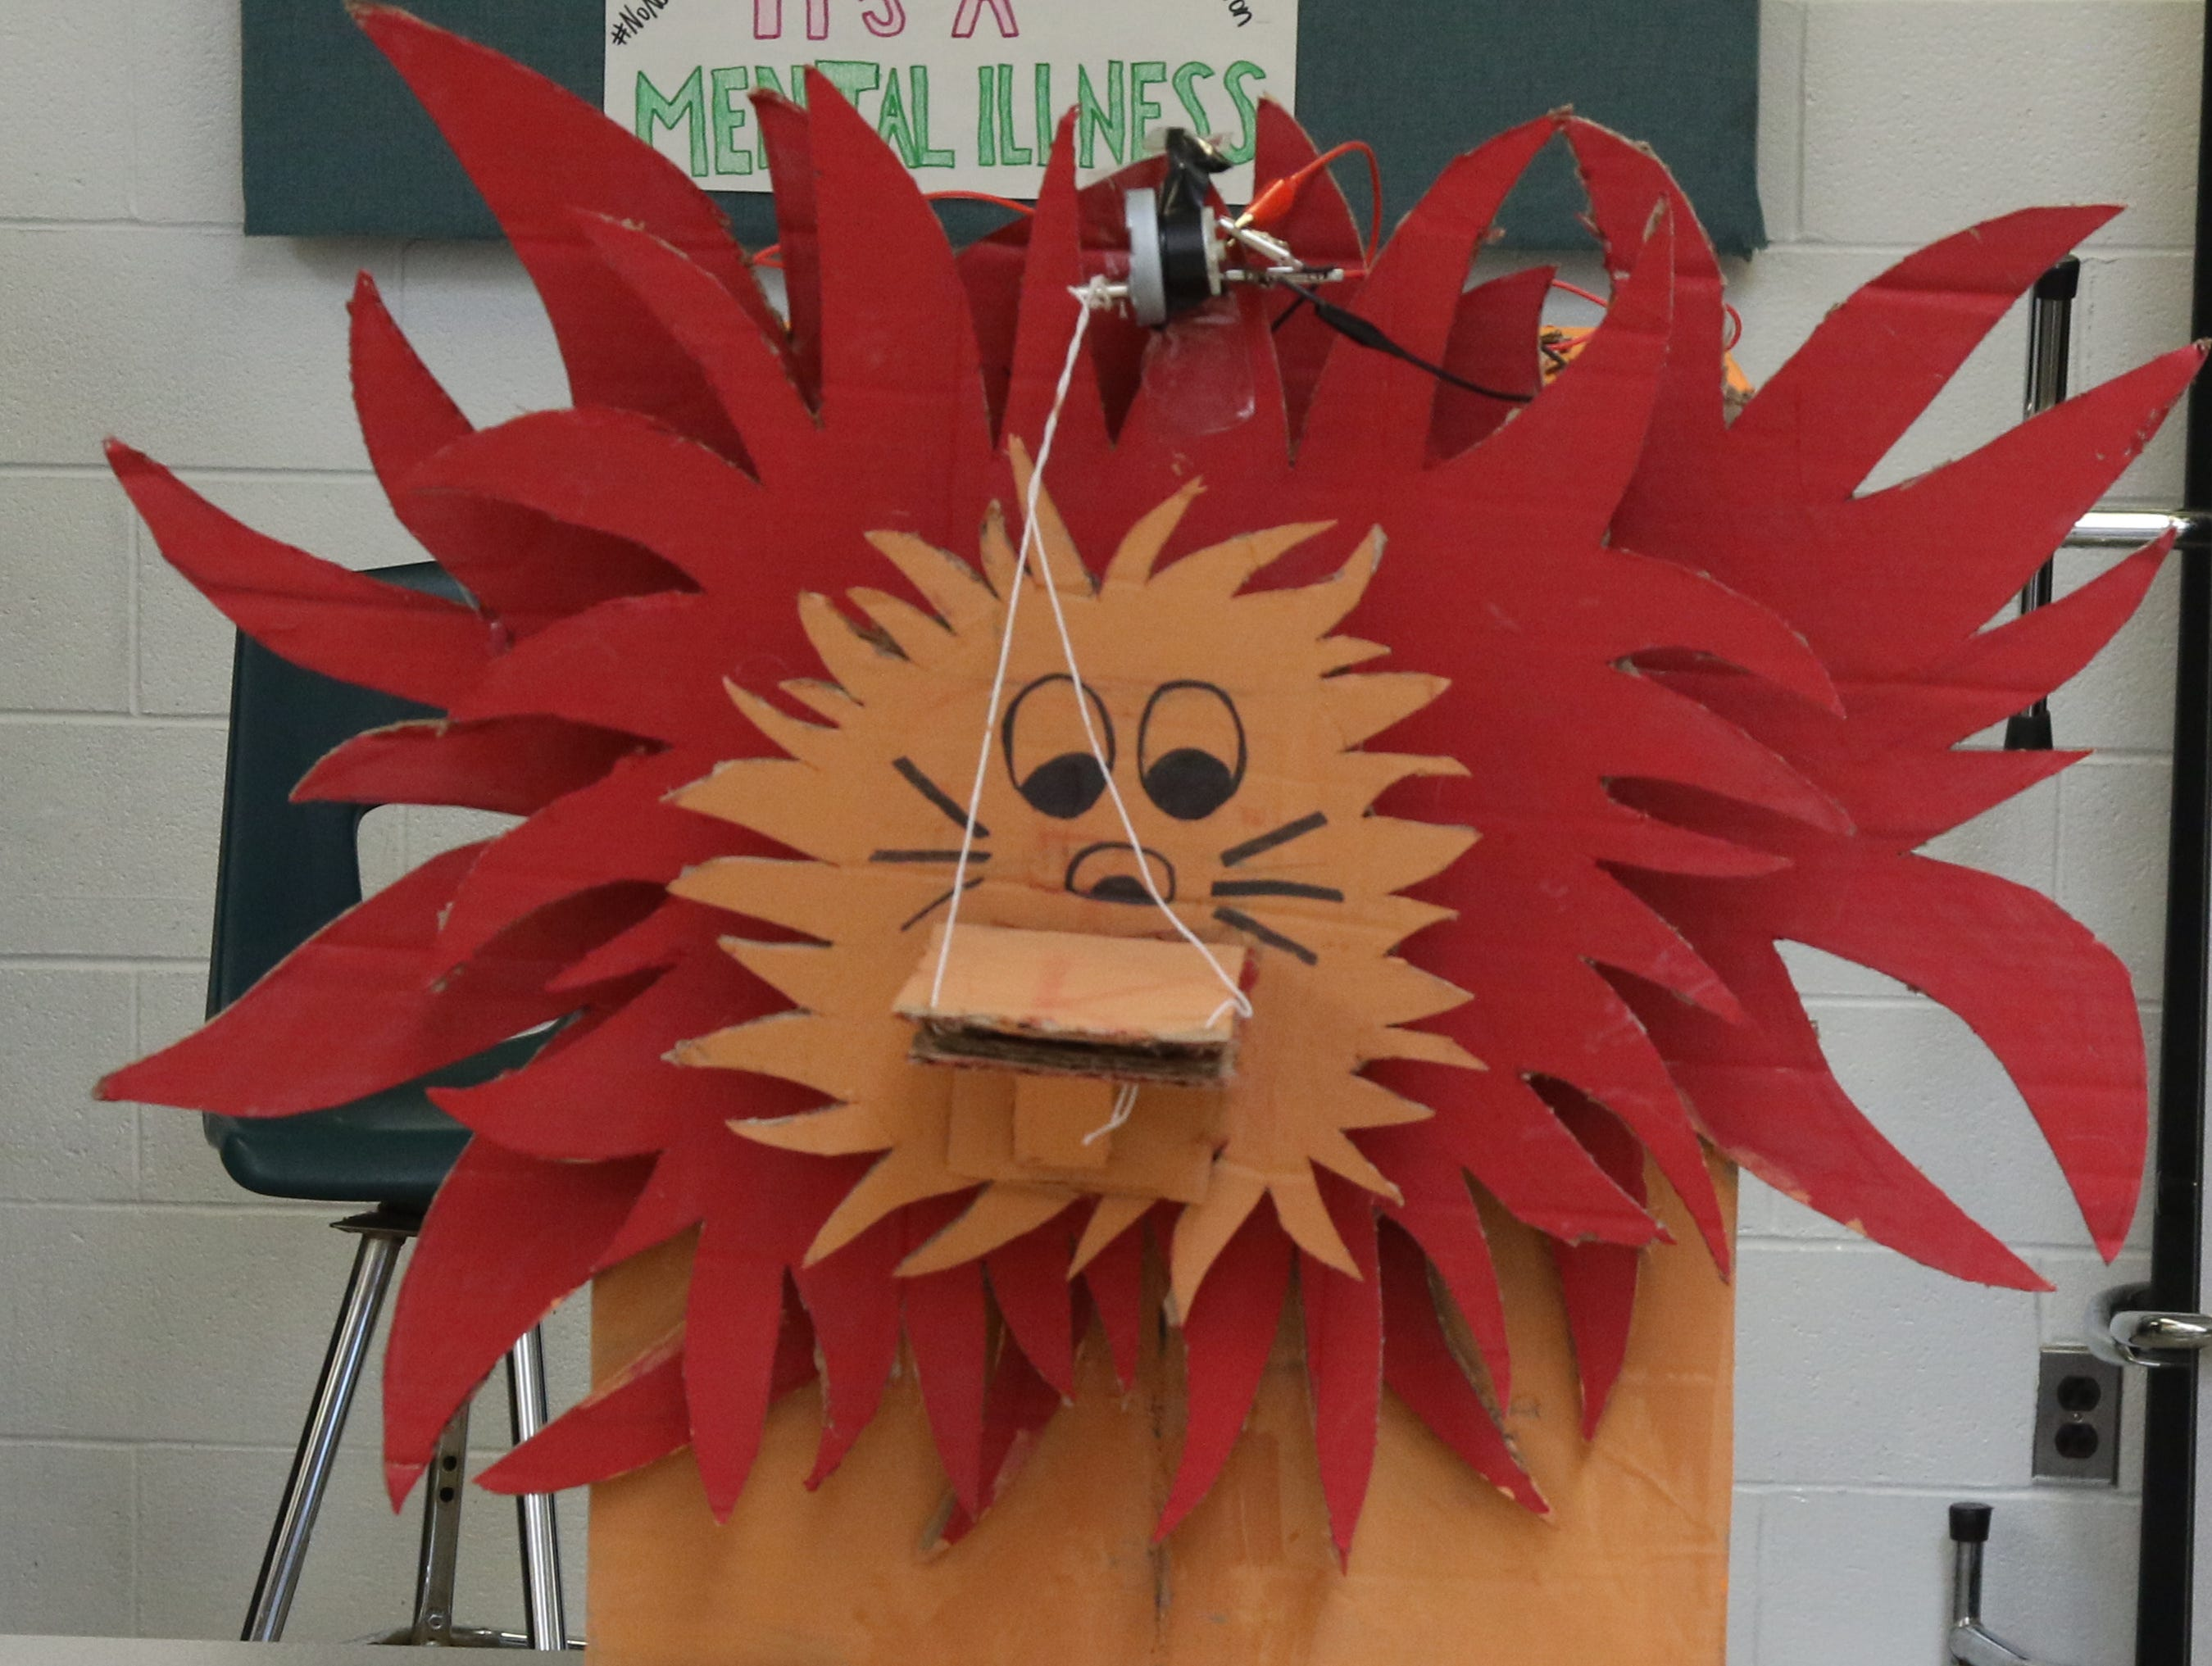 Simba the Roaring Lion is part of the Cardboard Animal-a-thon at Ramapo HS where engineering students work on and display their projects, making mechanical animals out of cardboard. They also helped younger students work on projects during the event held at Ramapo HS on February 9, 2019.